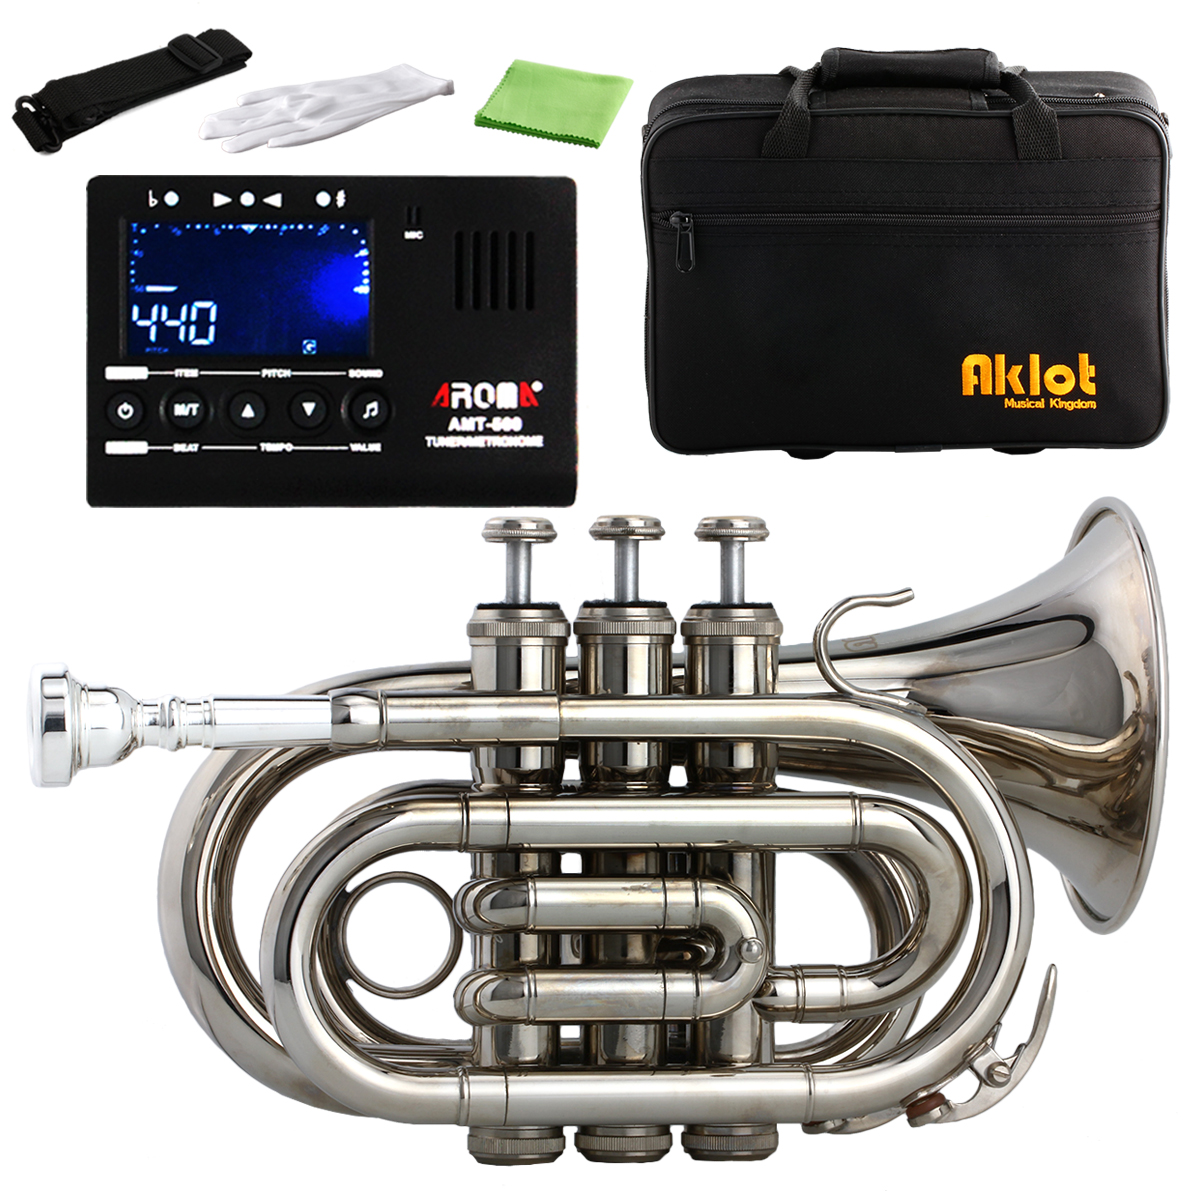 Aklot Bb Mini Pocket Trumpet 7C Silver Plated Mouthpiece Brass Body Nickel Plated with Case and Tuner